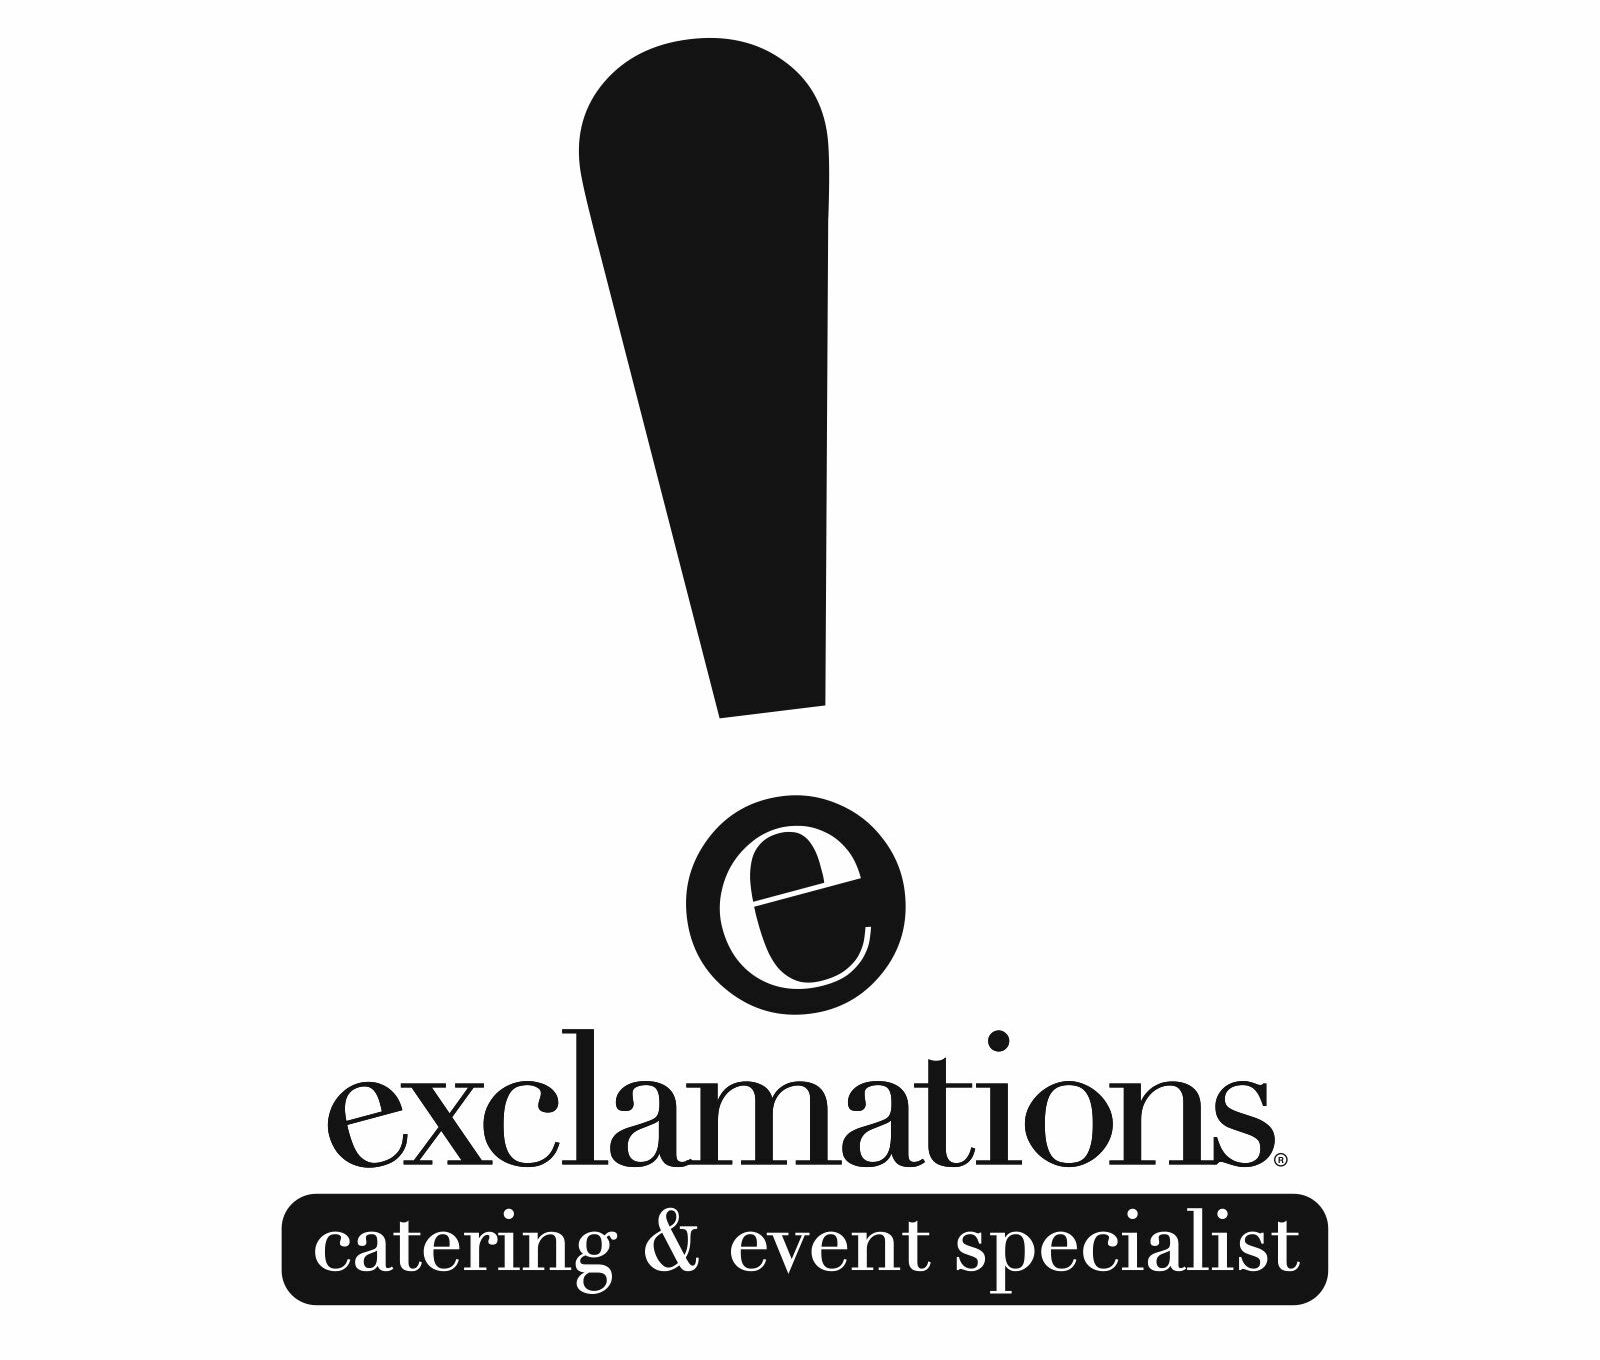 Exclamations Catering & Event Specialist